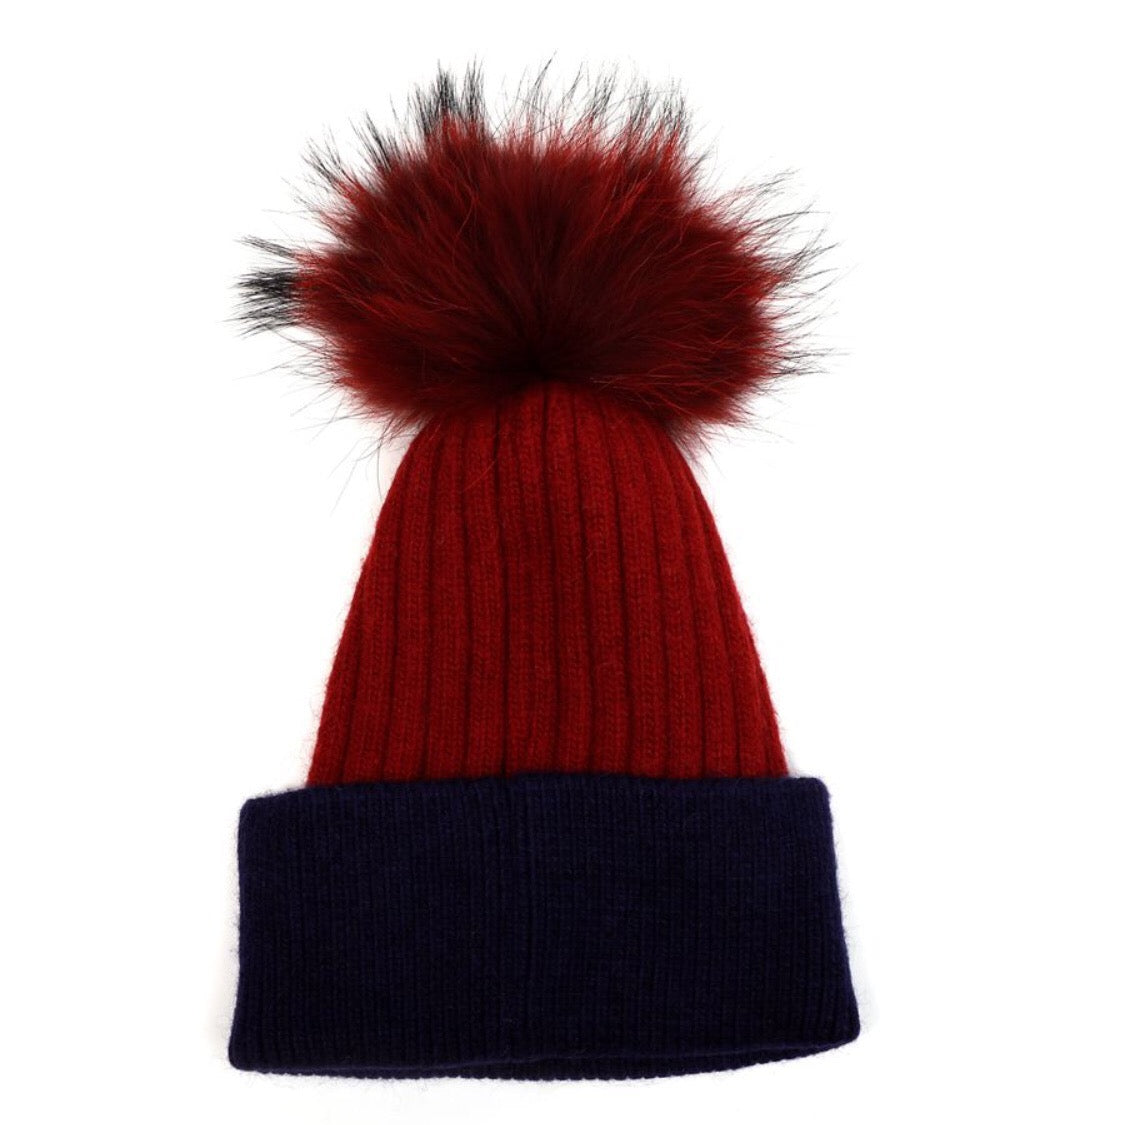 Beanie Hat with Fur Pom Pom